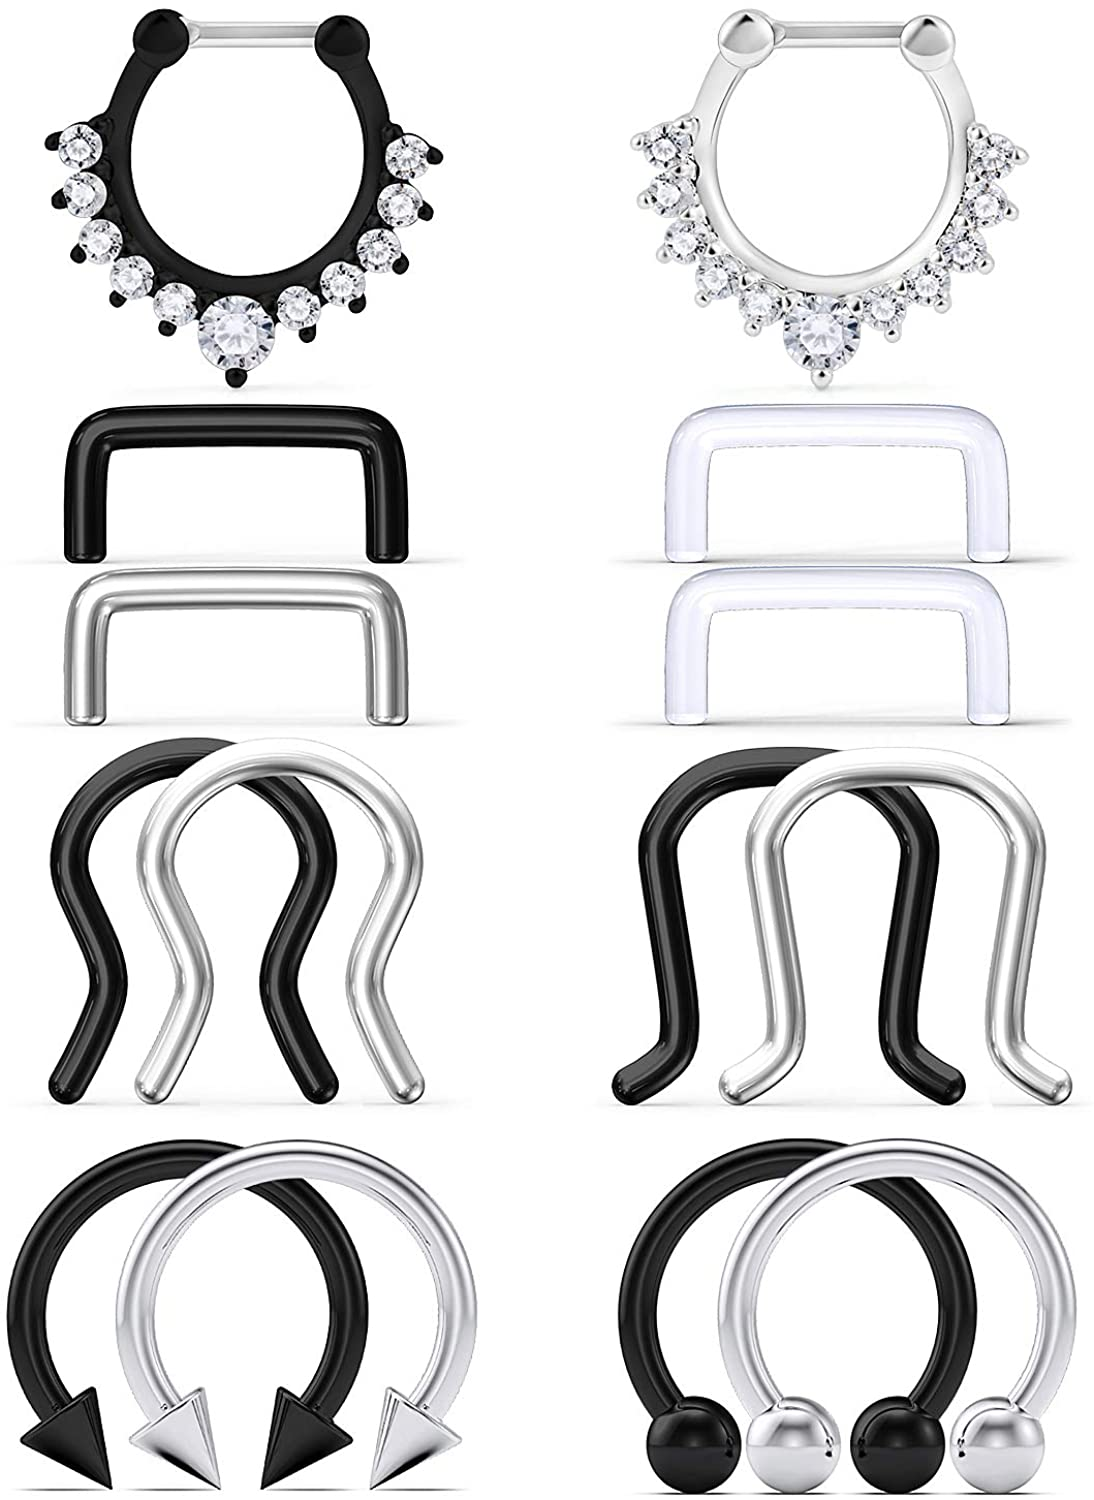 Hoeudjo 14PCS 16G Surgical Steel Septum Hoop Nose Ring Horseshoe Rings Cartilage Daith Tragus Clicker Retainer Body Piercing Jewelry for Women Men Diamond CZ Inlaid